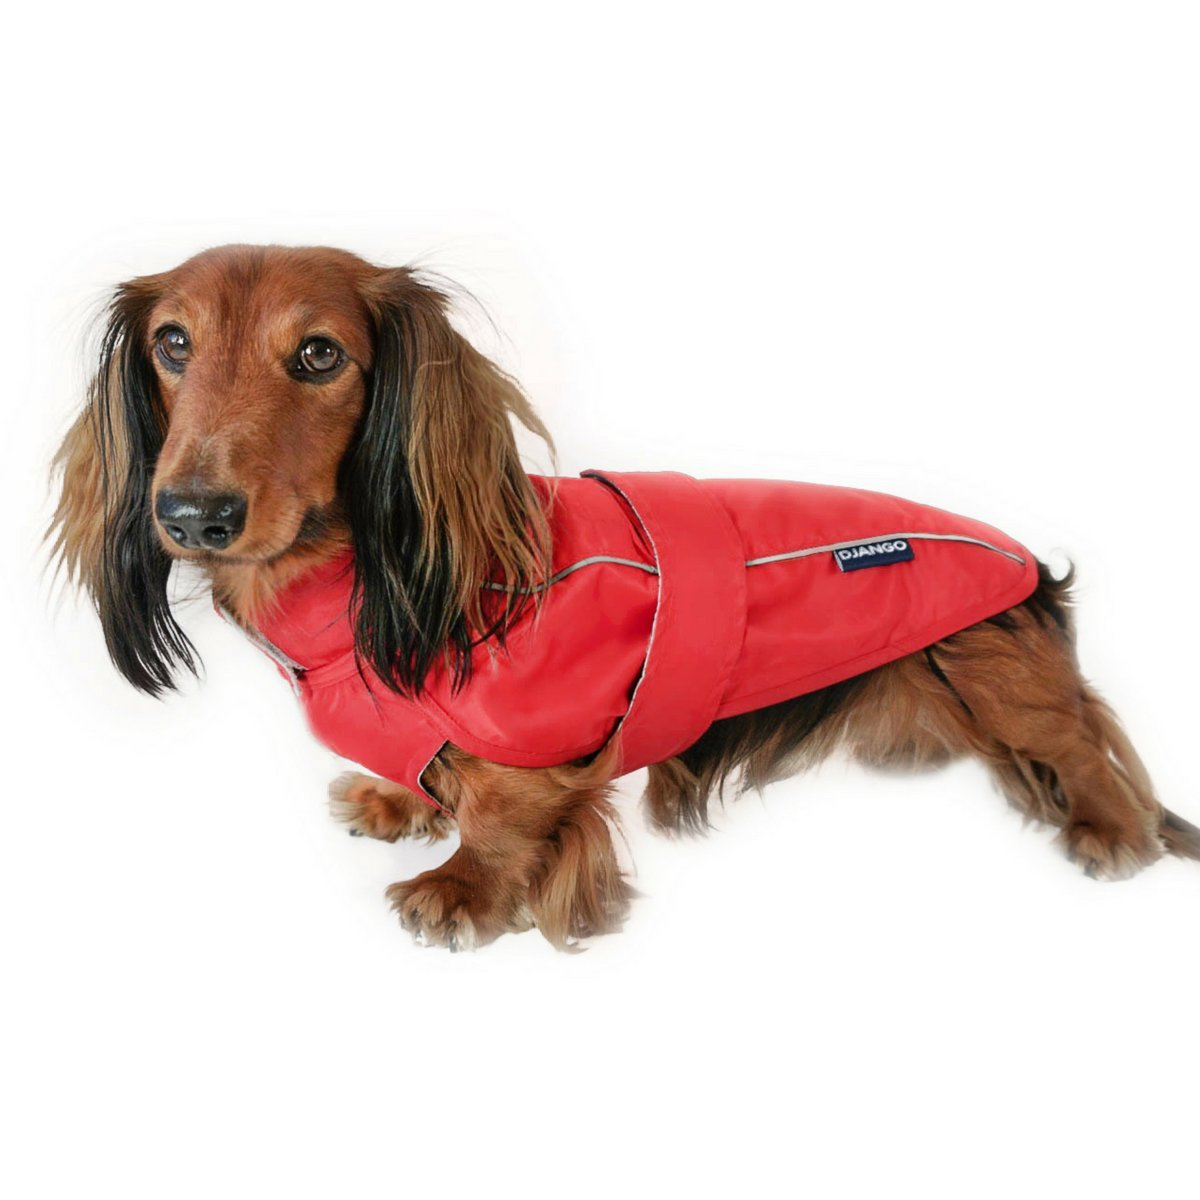 DJANGO City Slicker Water-Repellent Dog Raincoat and All-Weather Jacket with Reflective Piping (X-Small, Cherry Red) by DJANGO